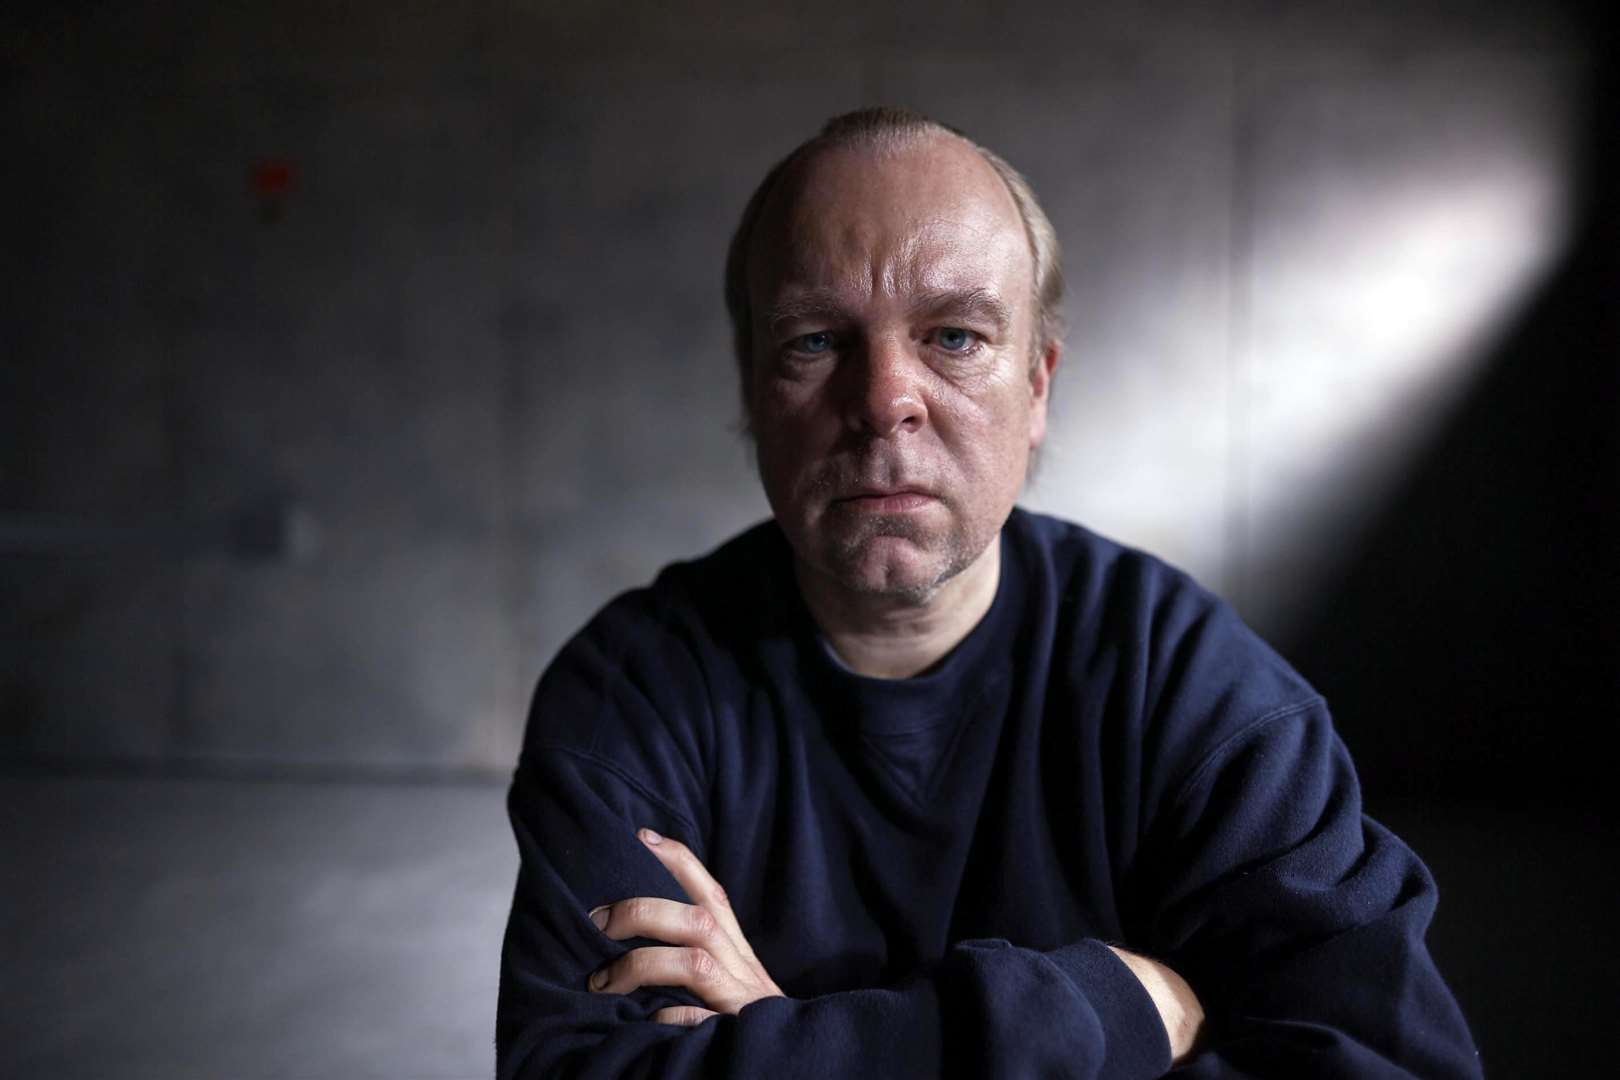 Actor Steve Pemberton as Tony Martin in Channel 4's The Interrogation of Tony Martin, created by Story Films. Picture: SUBMITTED. (5485309)